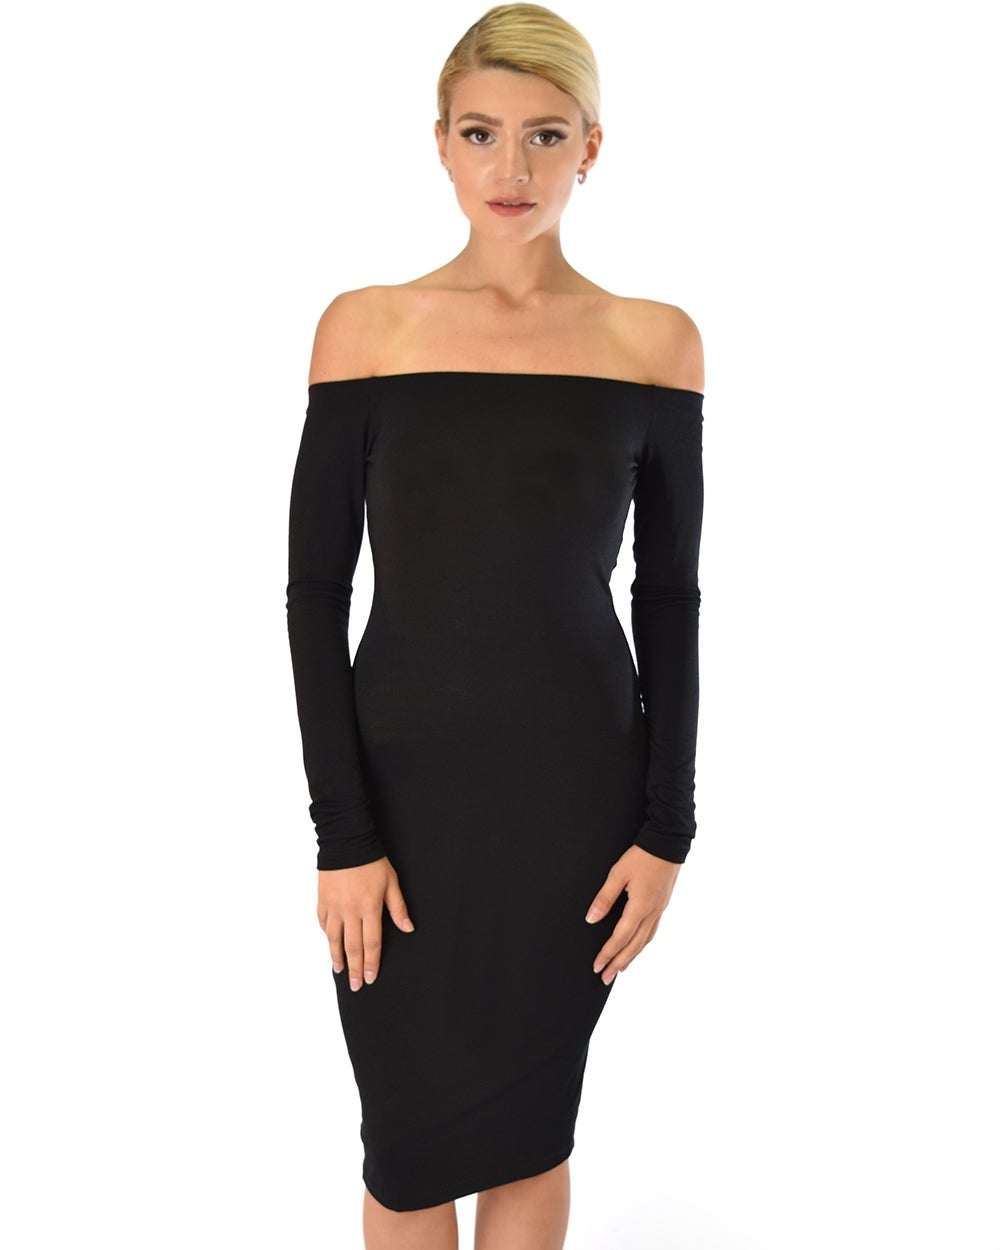 Image of Black Long Sleeve Bodycon Dress